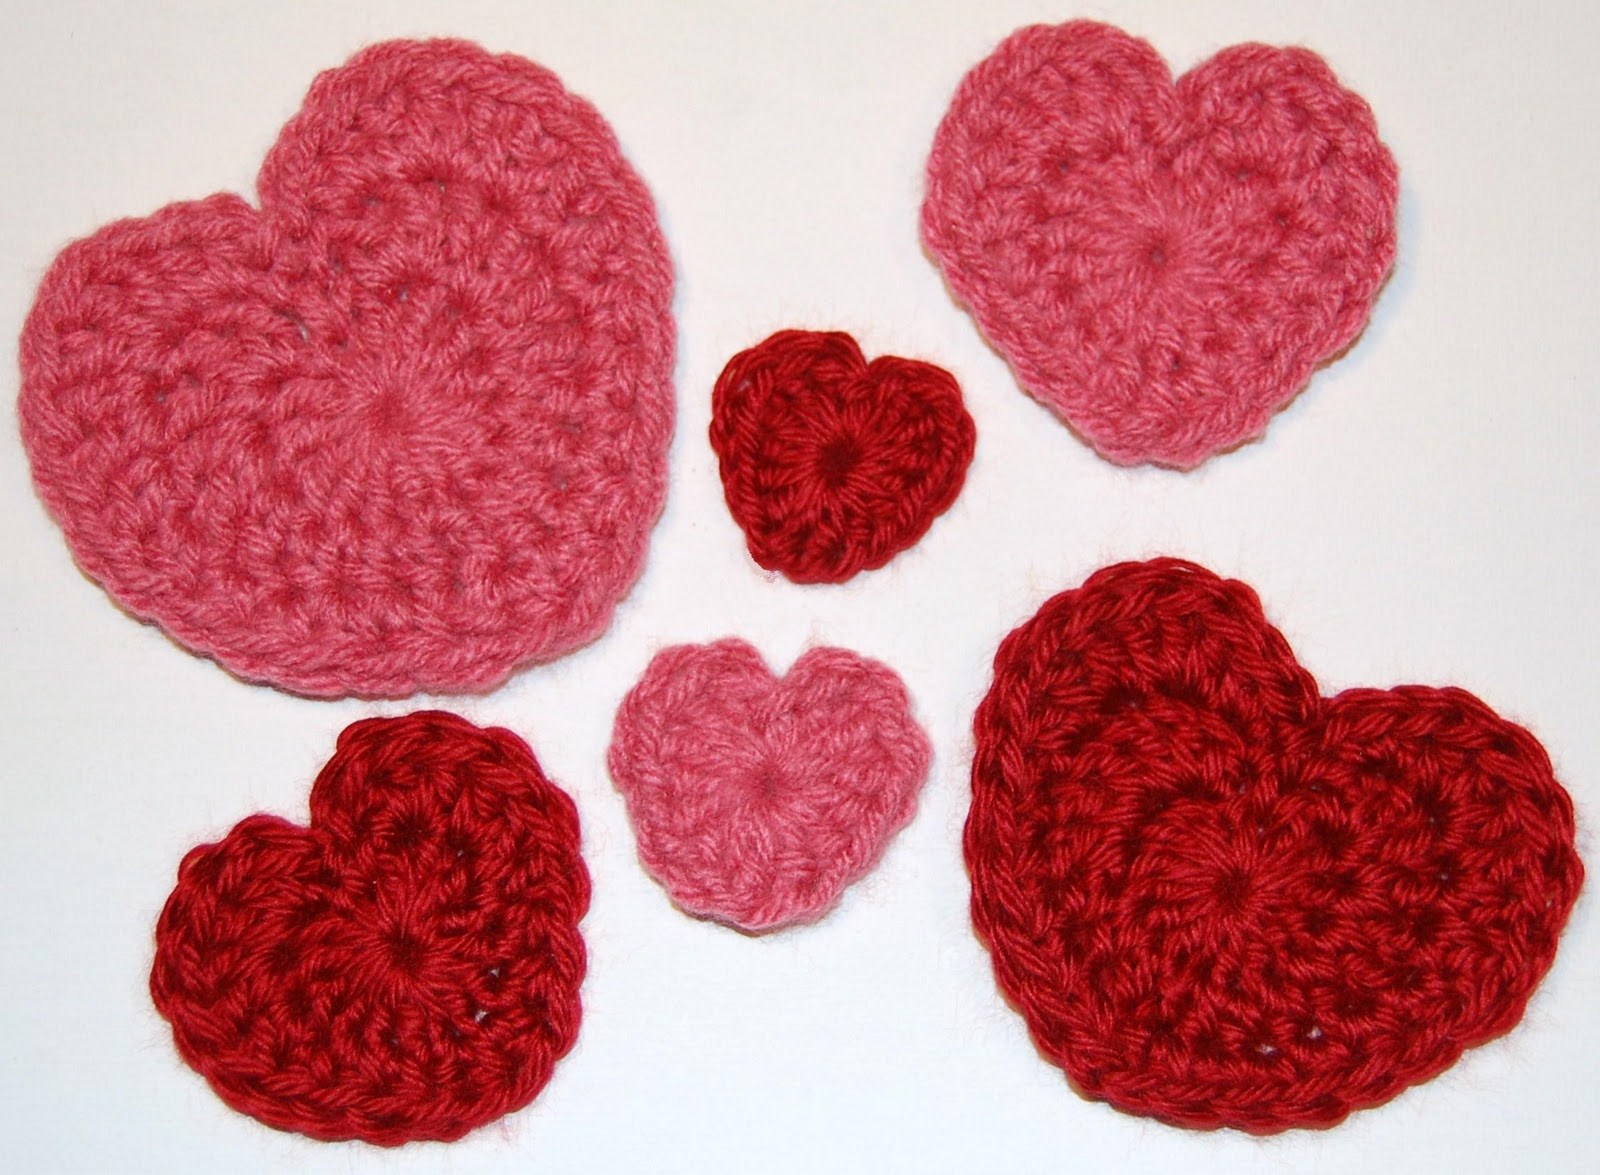 Crochet Heart : Valentines Day Heart Crochet Patterns - Petals to Picots